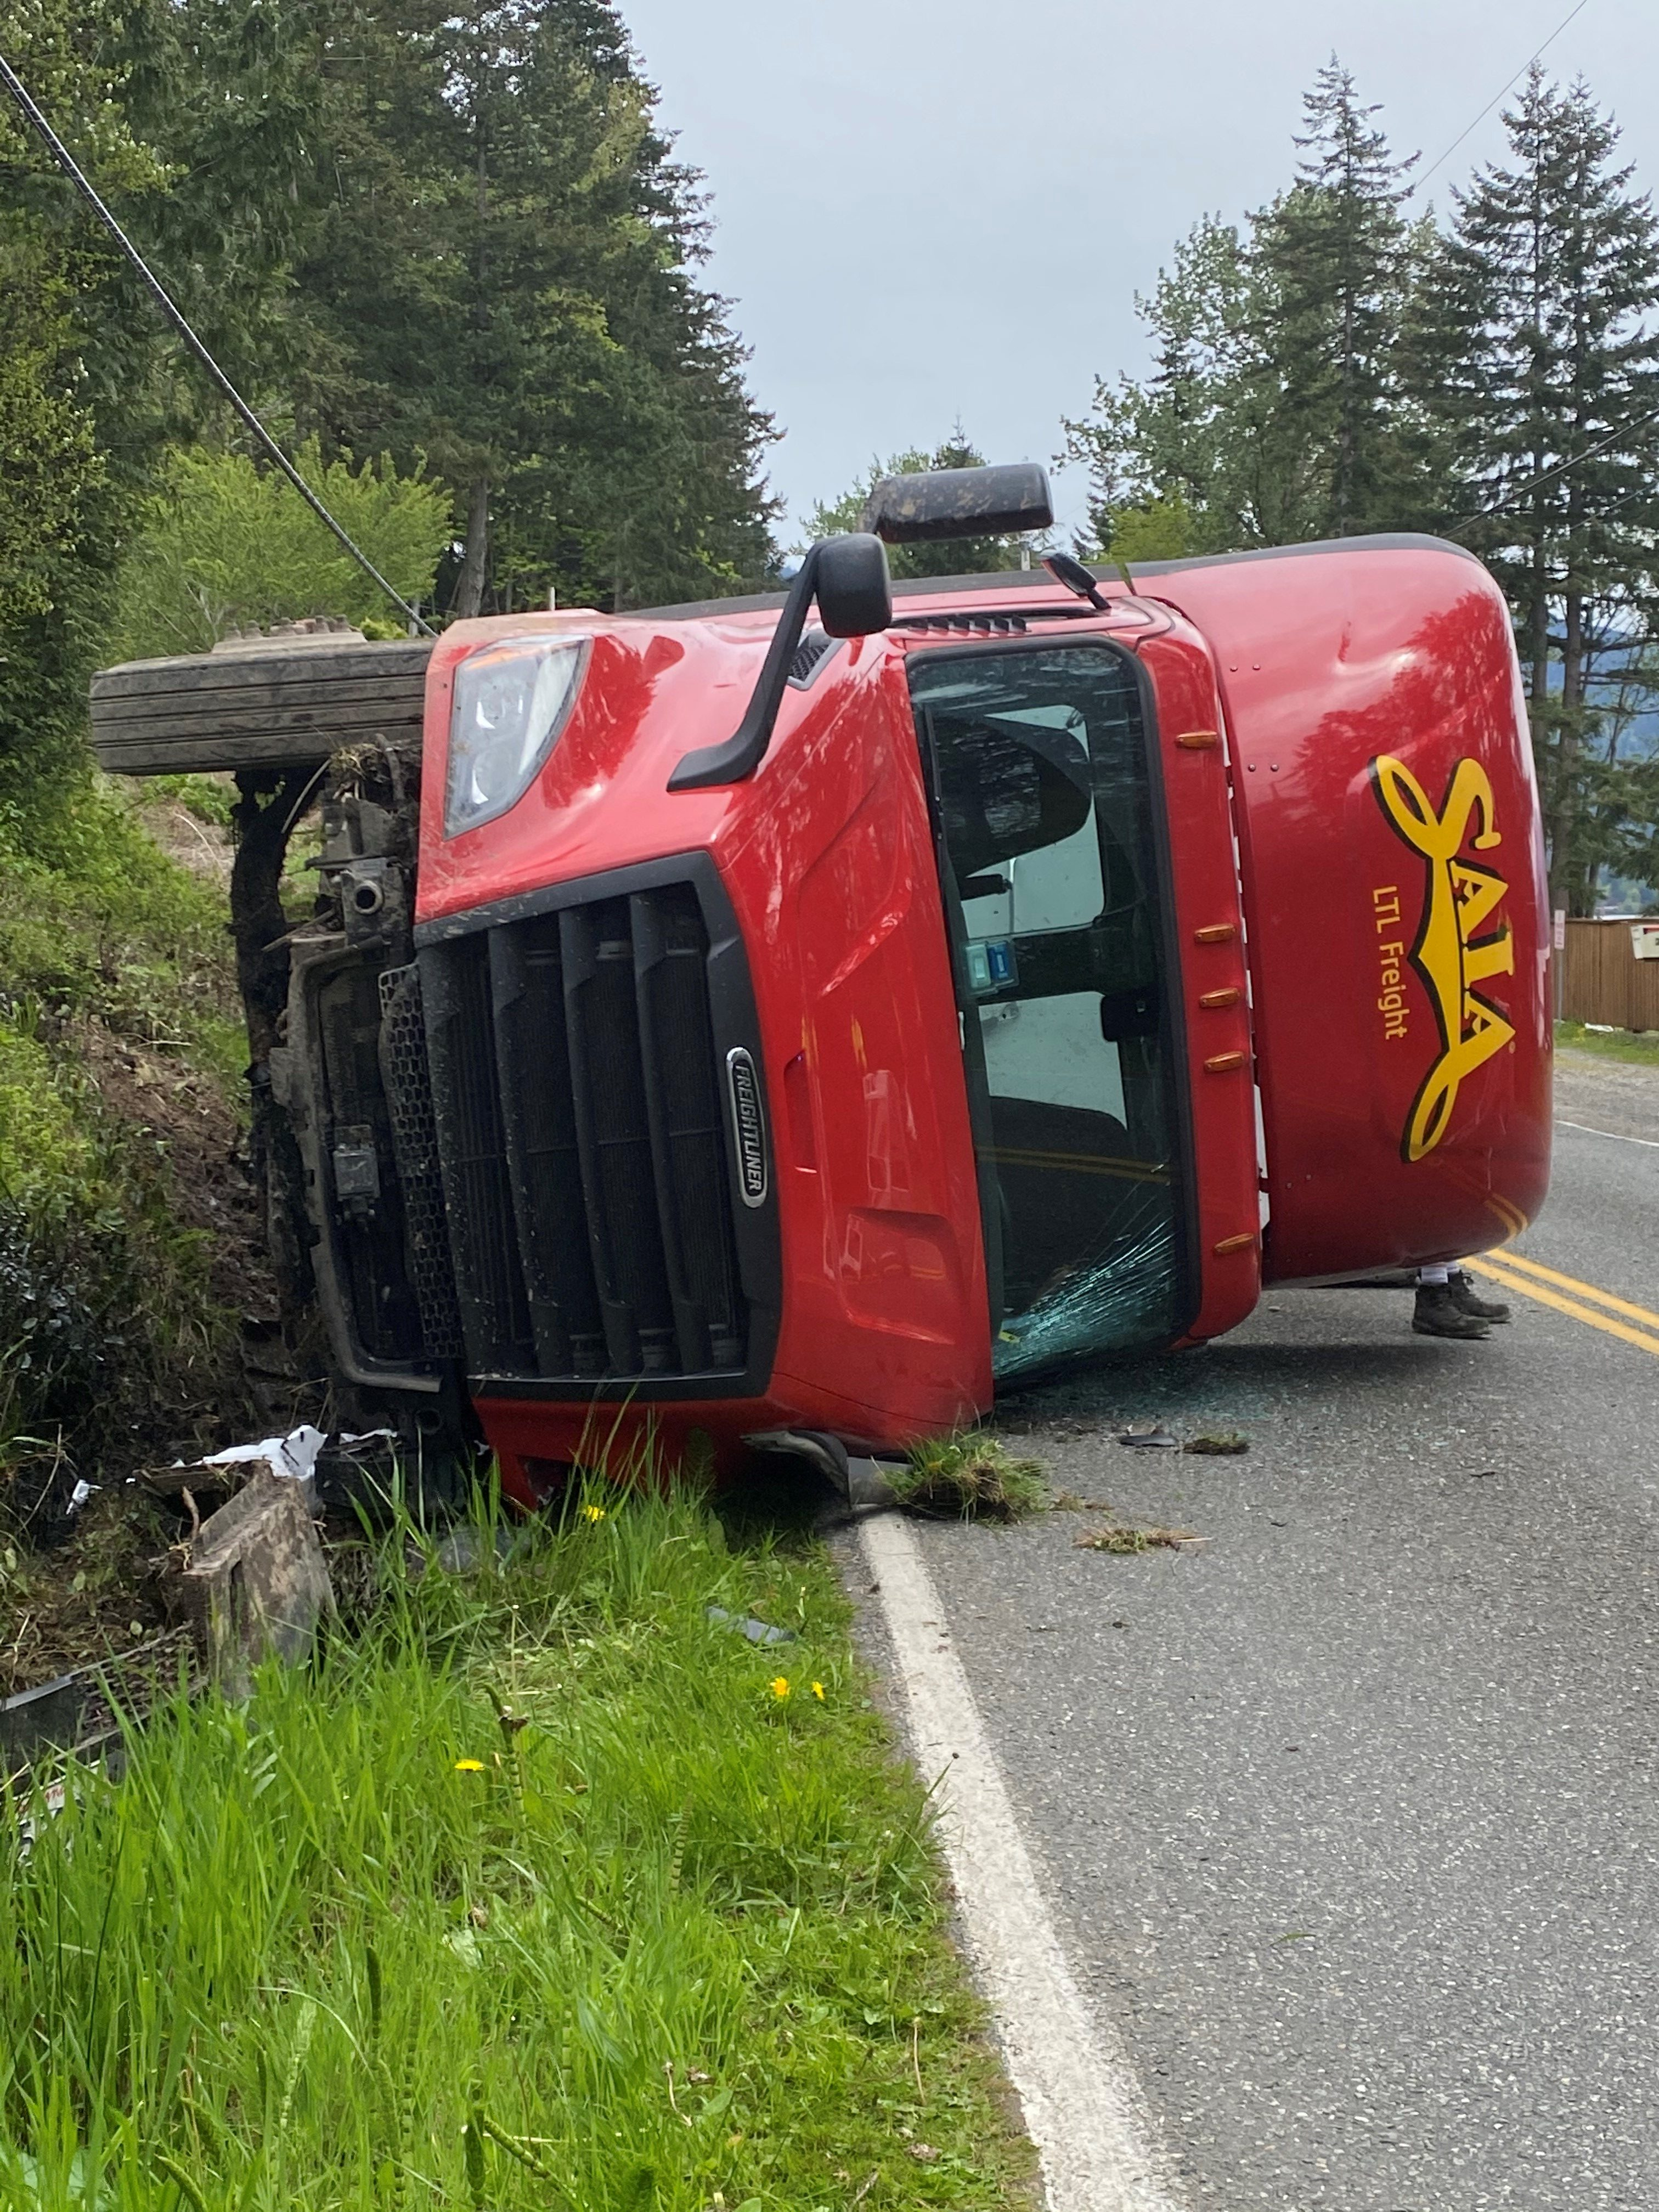 Scene of rollover crash on Northshore Road (May 3, 2021). Photo: Taimi Dunn Gorman